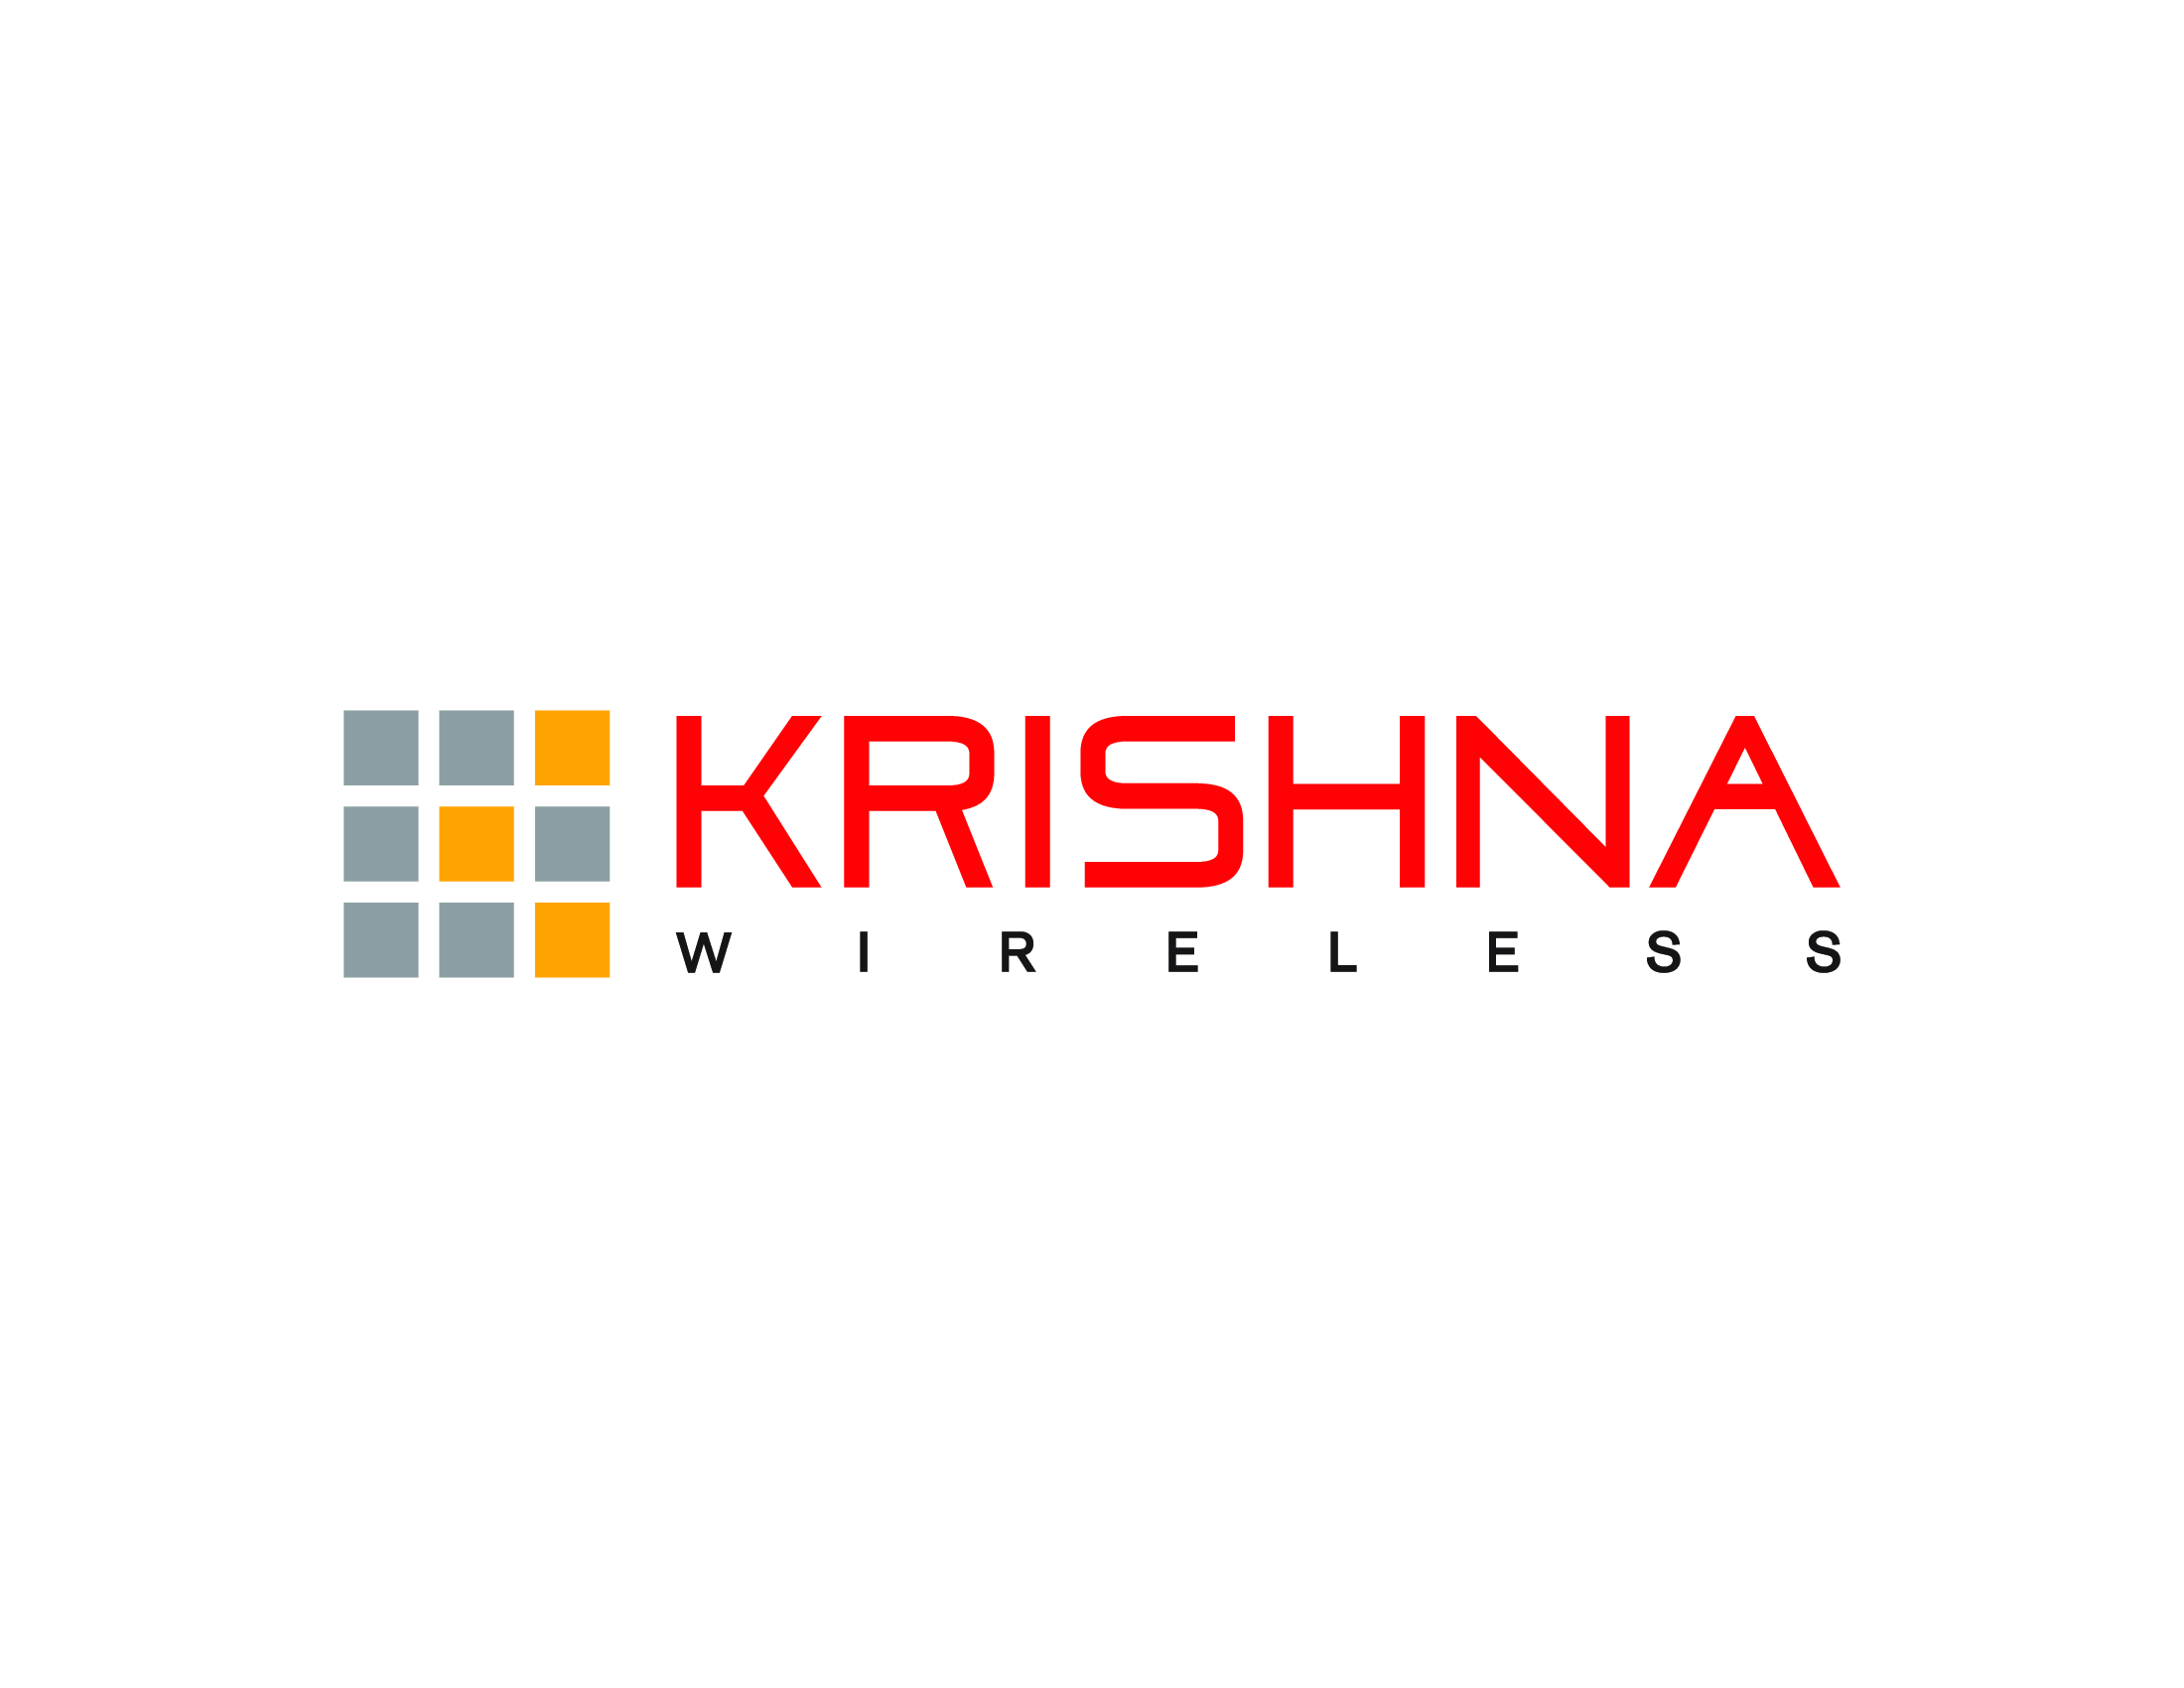 Krishna Wireless